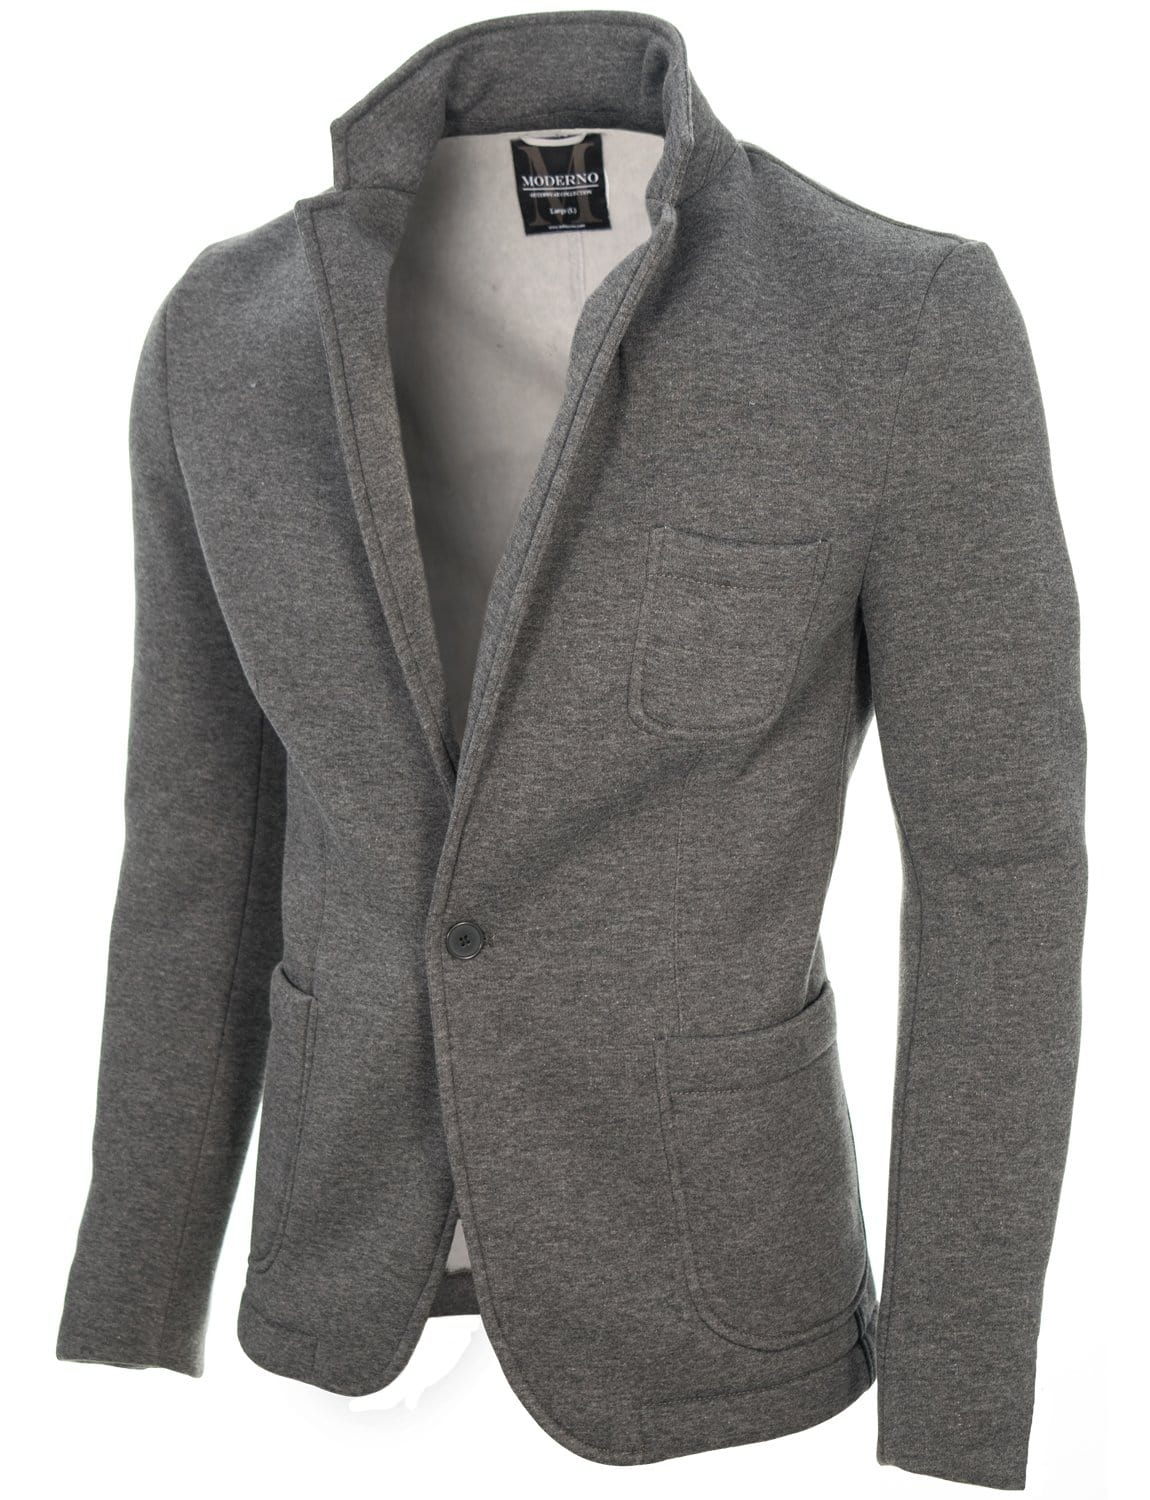 Mens Casual Knitted Cotton Blazer Dark Gray Mod14515b